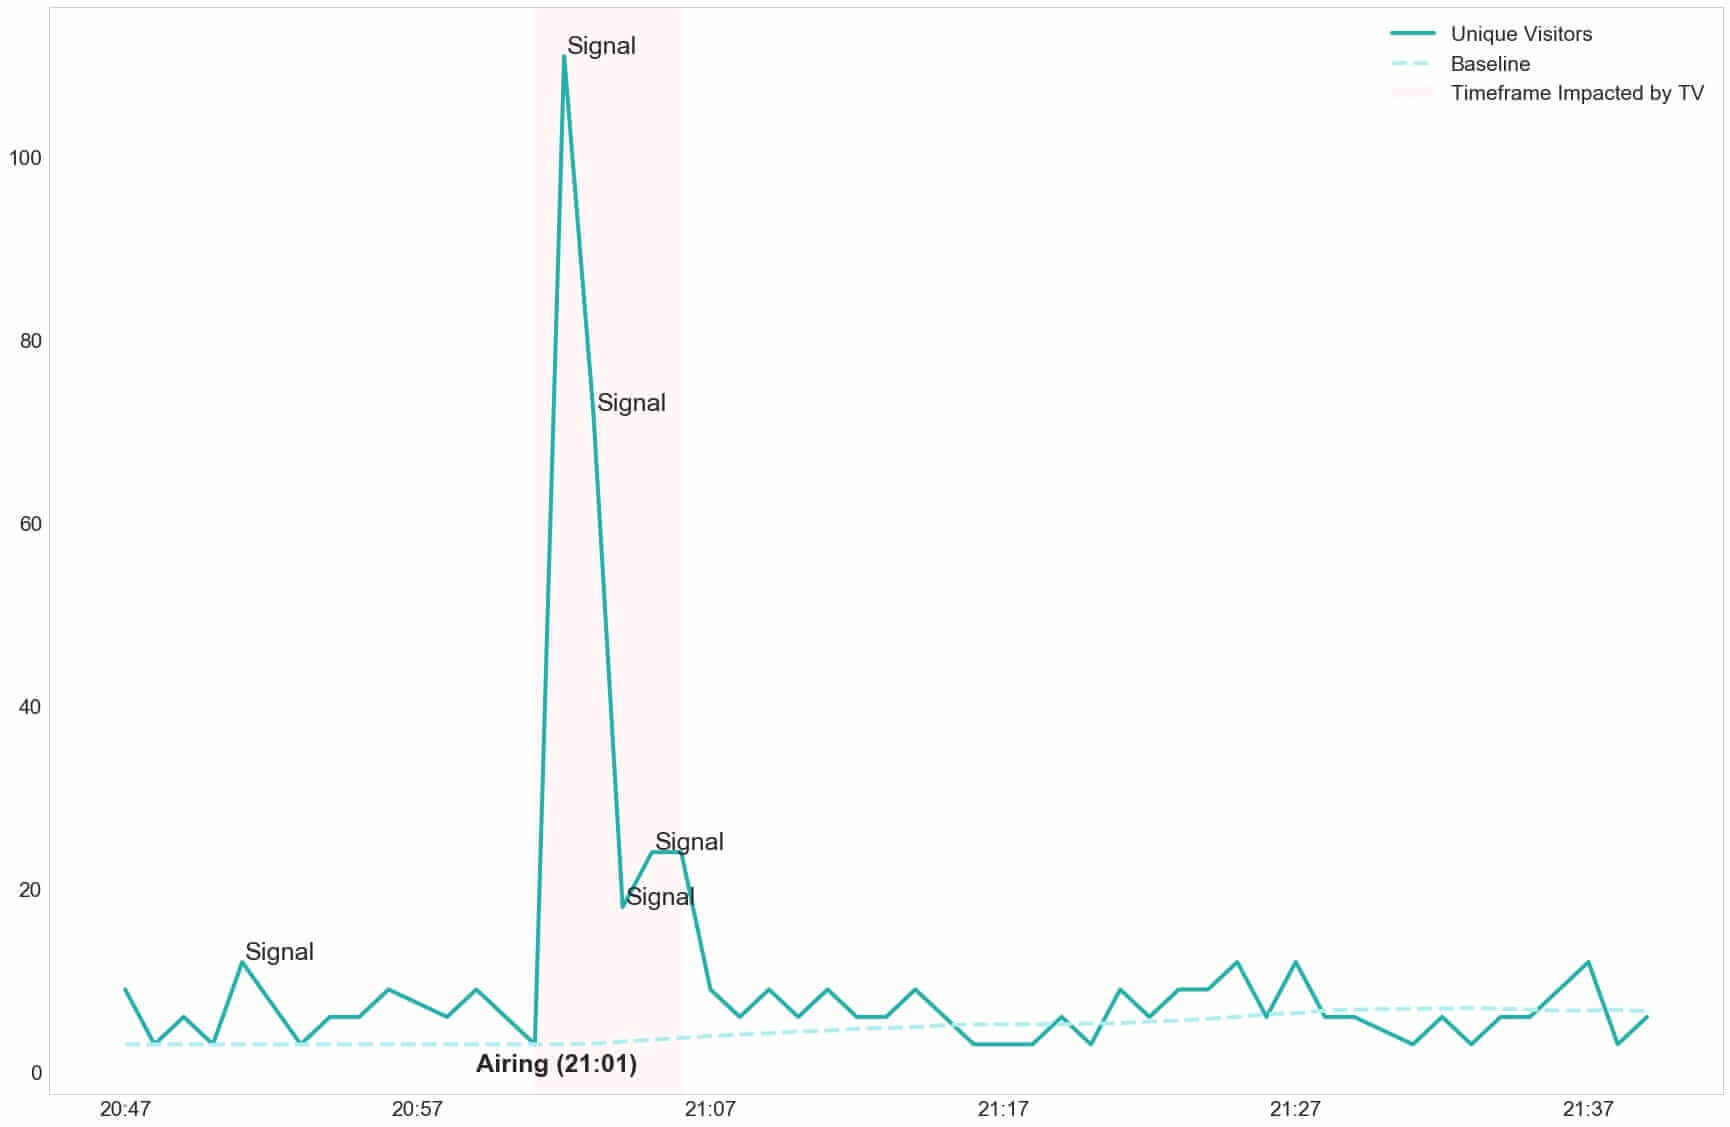 Number of unique visitors per minute, baseline and peaks (signal)